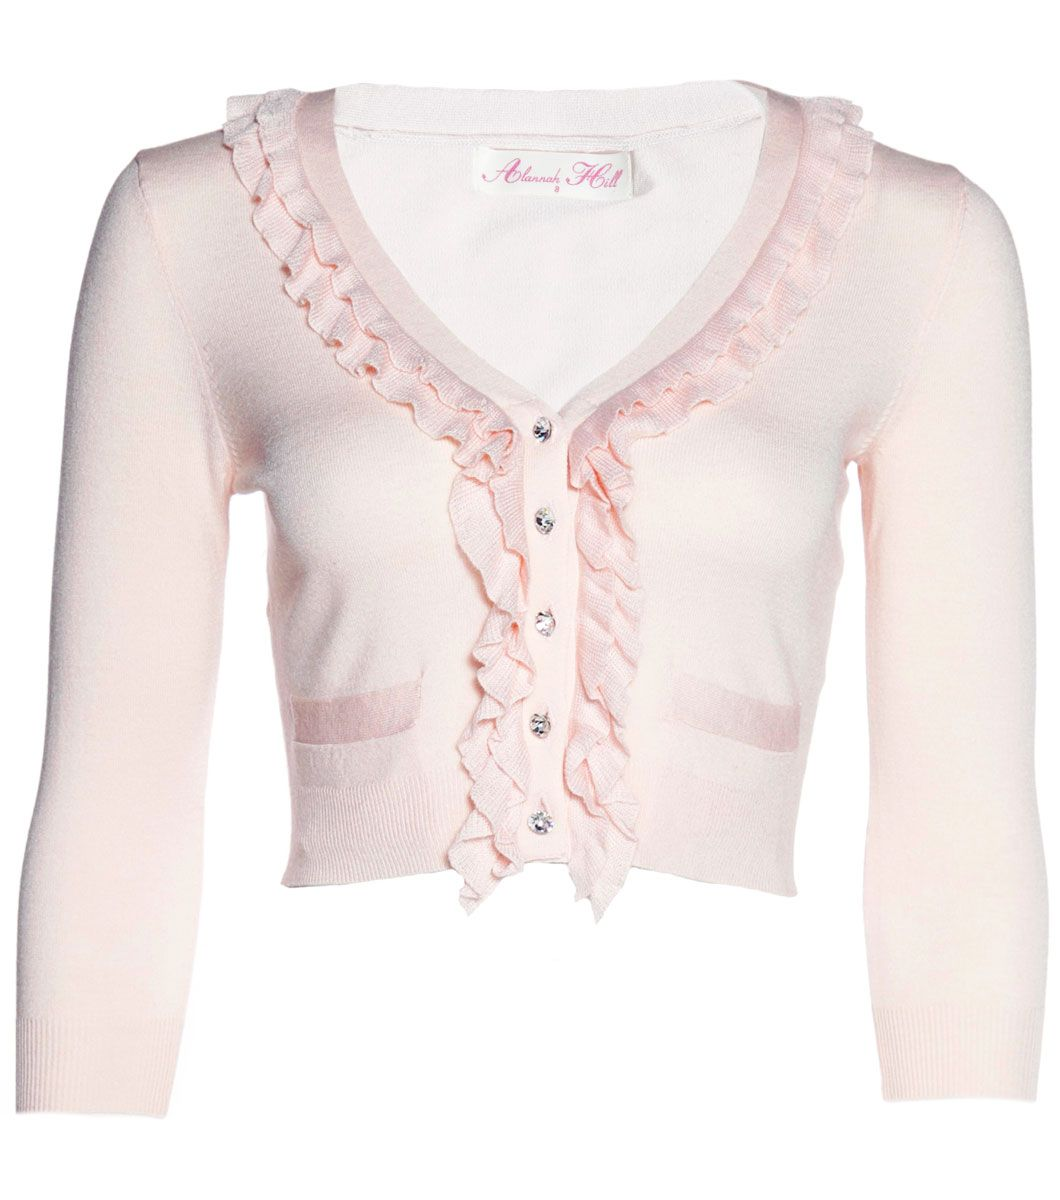 Alannah Hill Pale Pink Cardigan | Shades of Pink | Pinterest ...